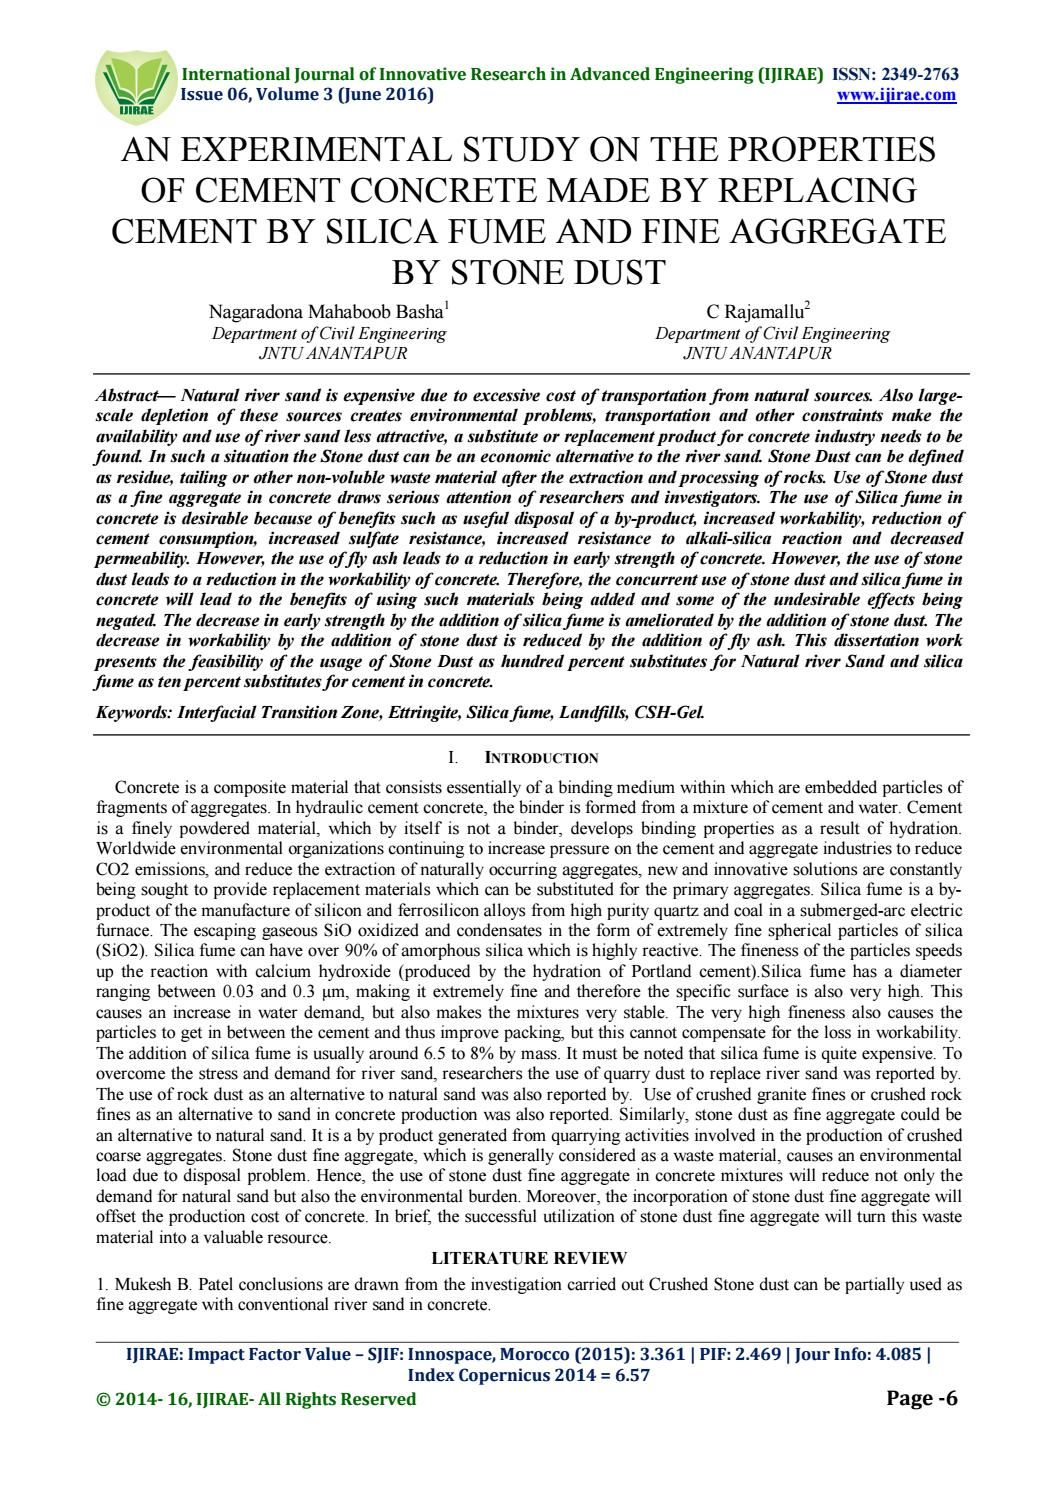 An Experimental Study On The Properties Of Cement Concrete Made By